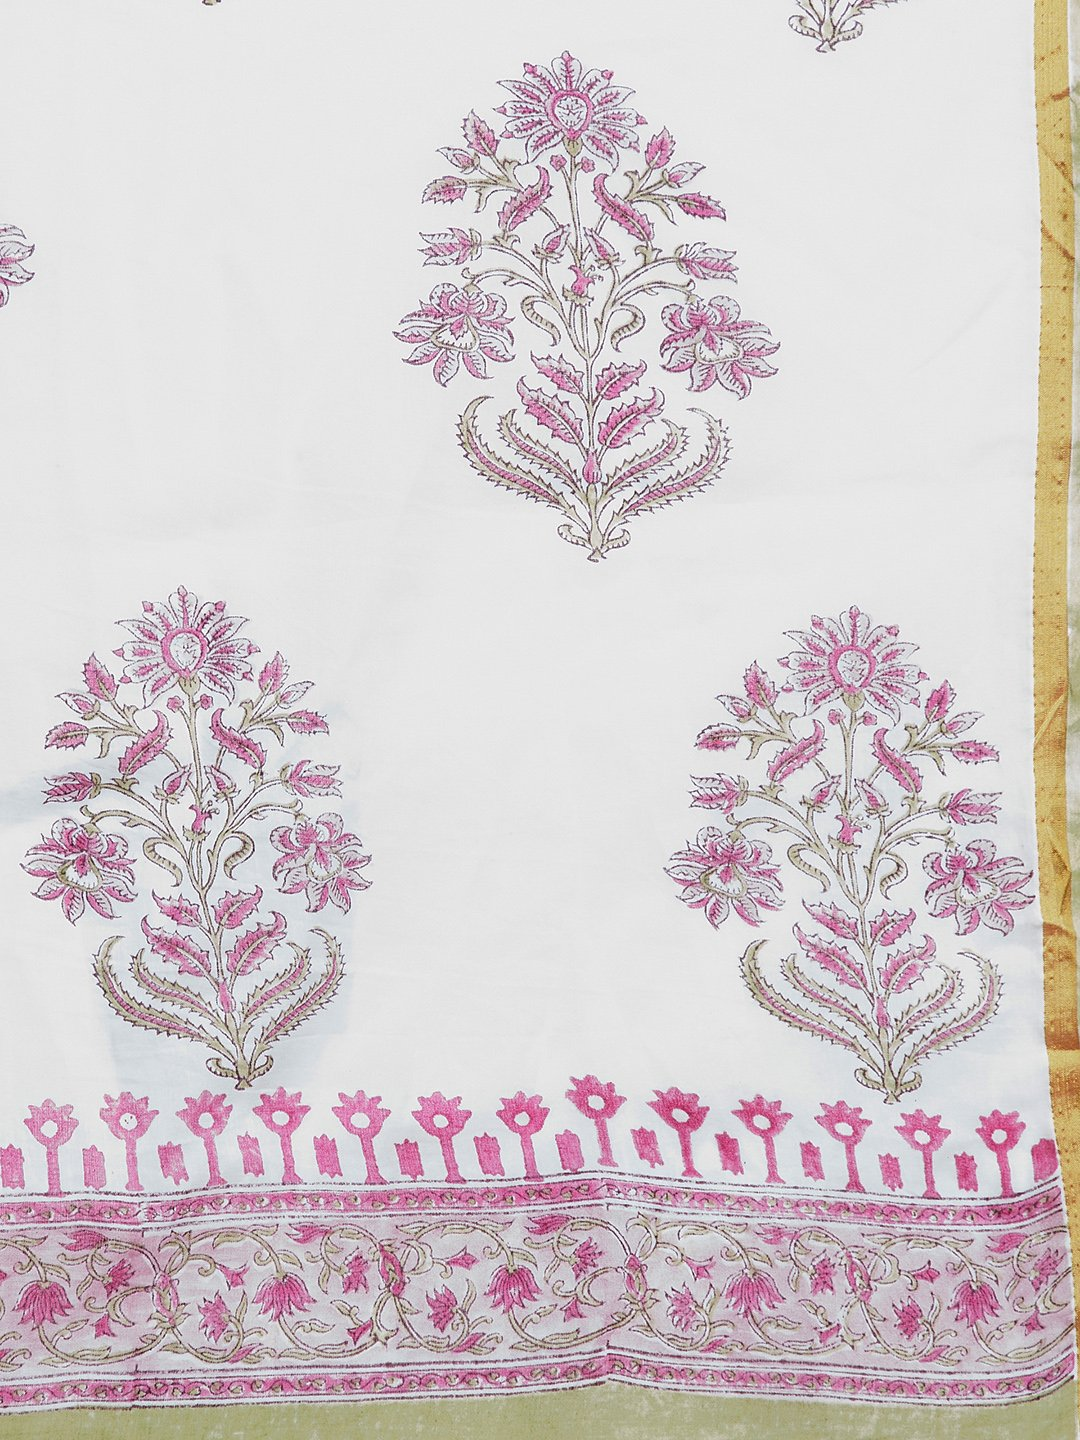 White & Pink Mughal Hand Block Print Handcrafted Cotton Saree-Saree-Kalakari India-BHKPSA0022-Cotton, Geographical Indication, Hand Blocks, Hand Crafted, Heritage Prints, Sanganeri, Sarees, Sustainable Fabrics-[Linen,Ethnic,wear,Fashionista,Handloom,Handicraft,Indigo,blockprint,block,print,Cotton,Chanderi,Blue, latest,classy,party,bollywood,trendy,summer,style,traditional,formal,elegant,unique,style,hand,block,print, dabu,booti,gift,present,glamorous,affordable,collectible,Sari,Saree,printed, ho